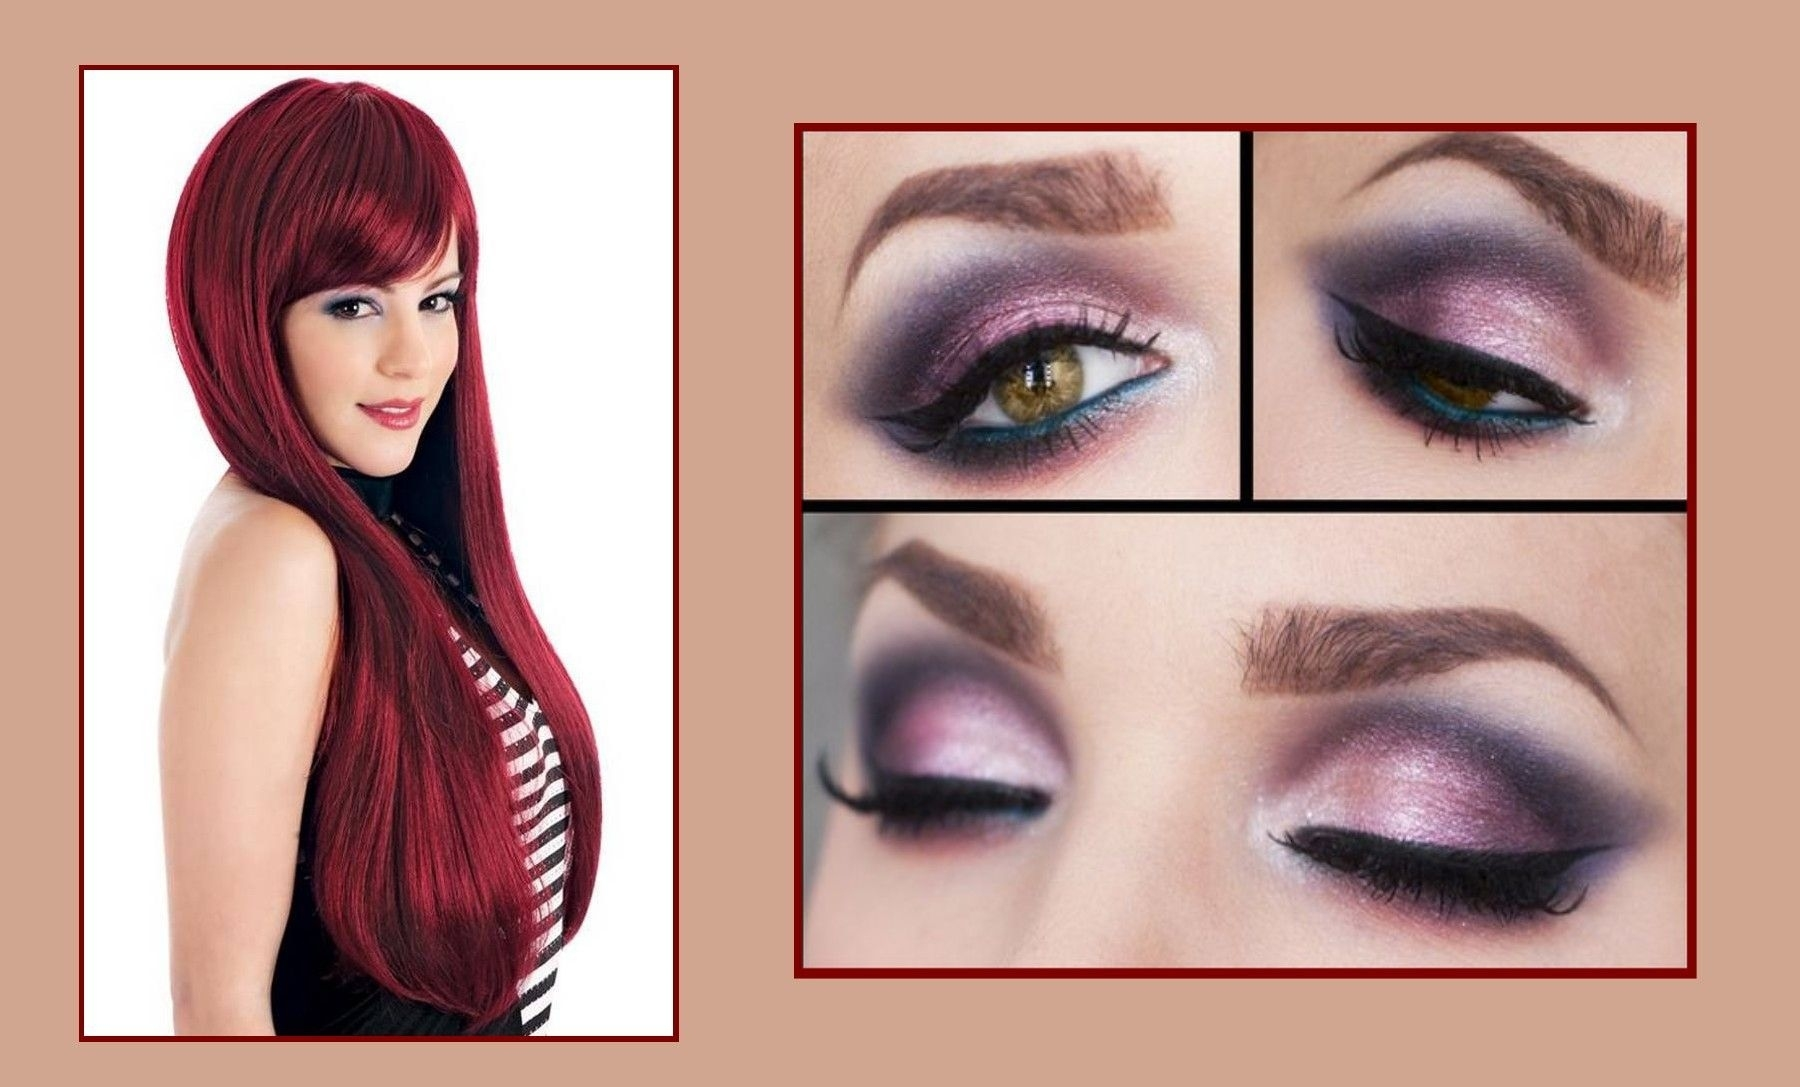 Makeup Tips For Hazel Eyes And Red Hair Makeupgenk Com with Makeup Tips For Red Hair And Hazel Eyes